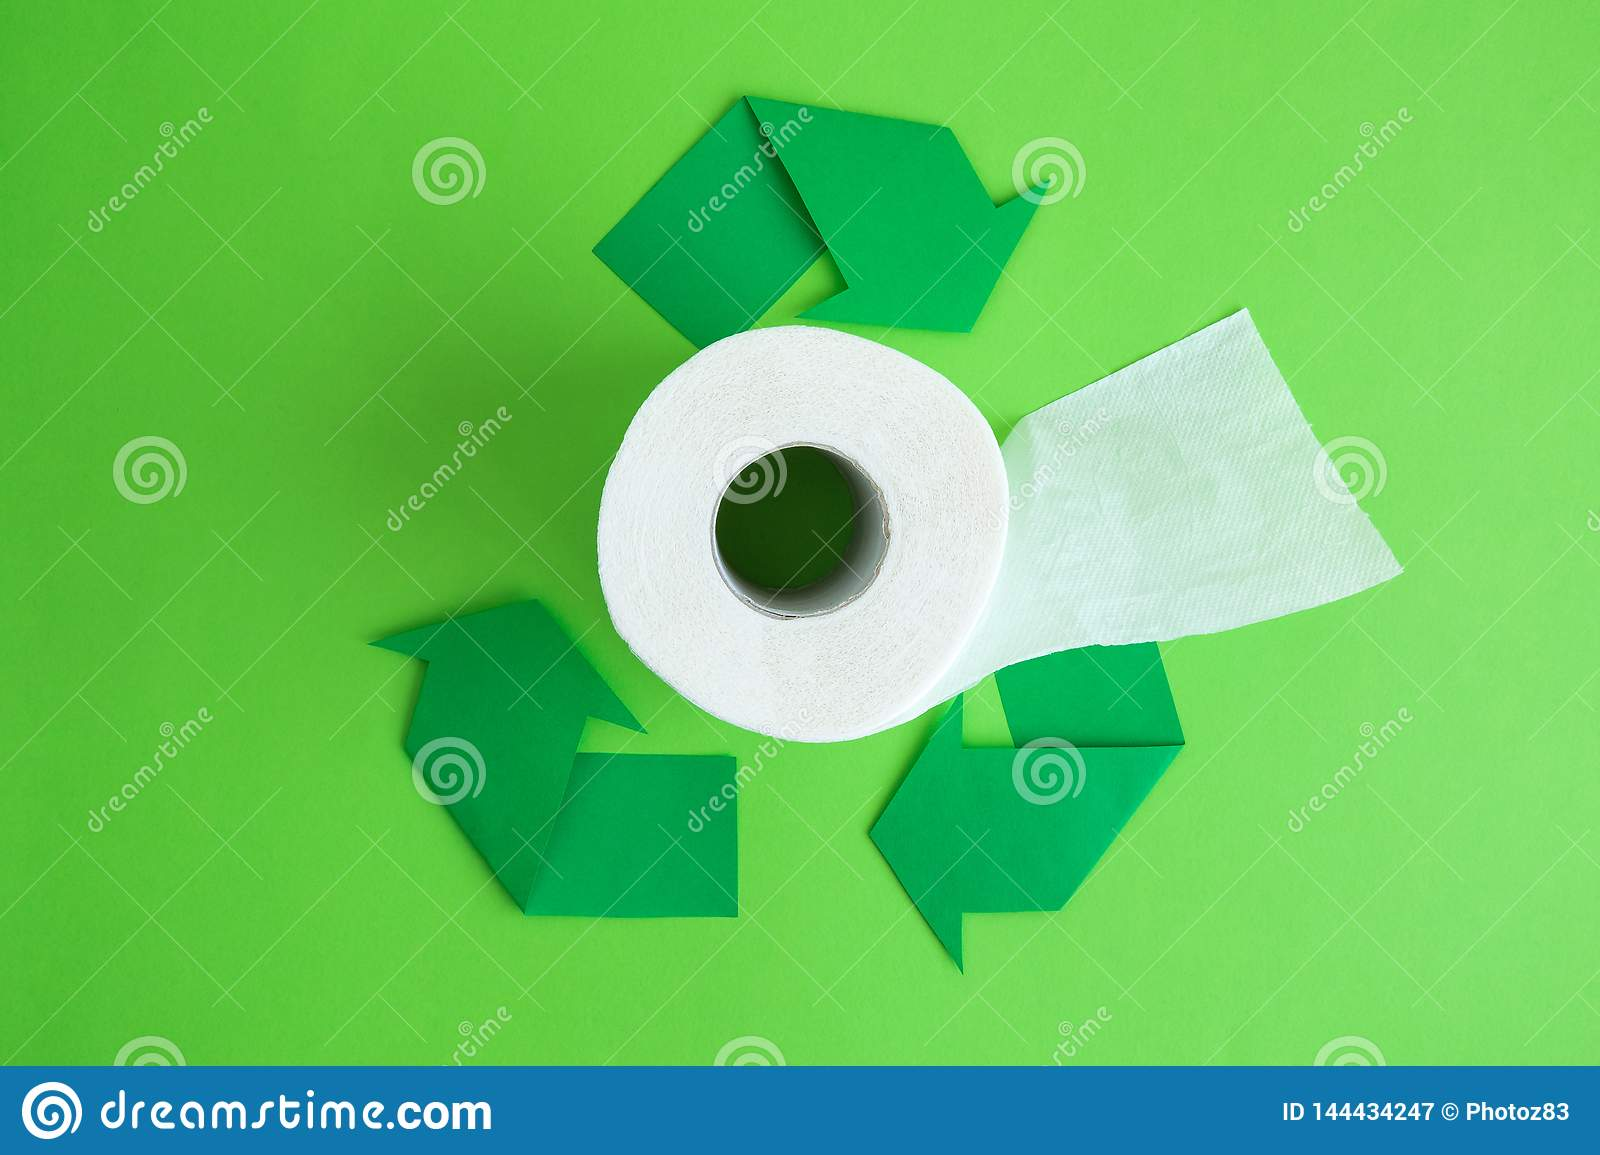 Toilet Paper Roll And Recycling Arrows Eco Abstract Stock